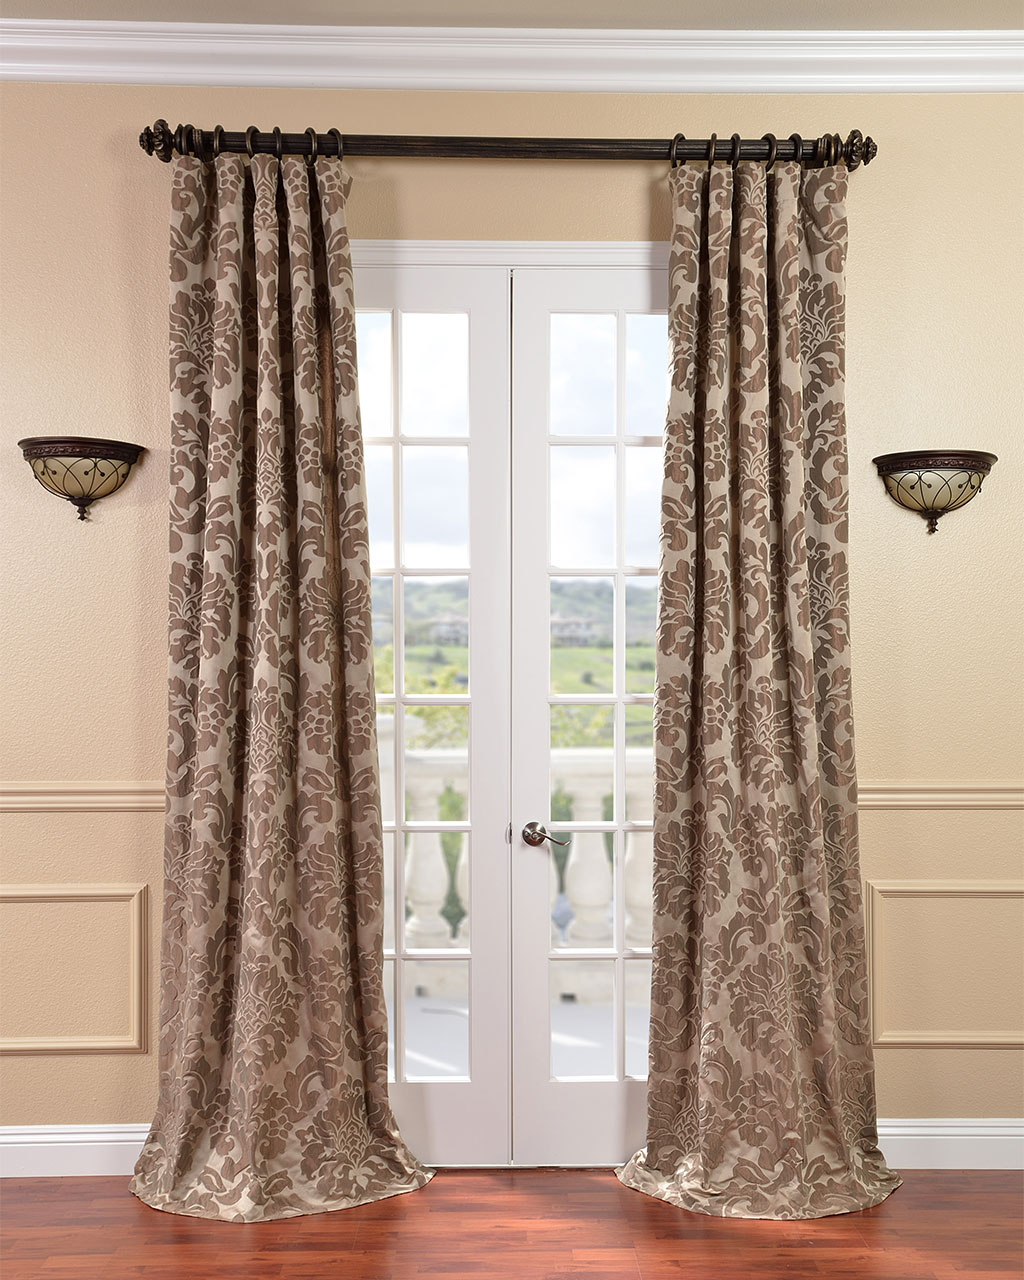 Lace And Curtains The Best Window Treatment For French. 220 Volt Garage Heater. 5 X 6 Garage Door. Garage Repair Invoice Template. Fiberglass Patio Doors. Petsafe Large Dog Door. Brush Door Sweep. French Door Stainless Steel Refrigerator Reviews. Linen Closet Door